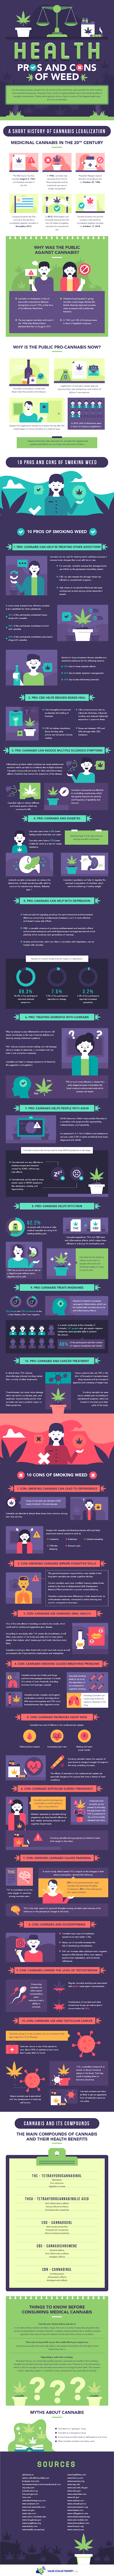 Health Pros and Cons of Weed #infographic #Health #Drugs #infographics #Cannabis #CBD